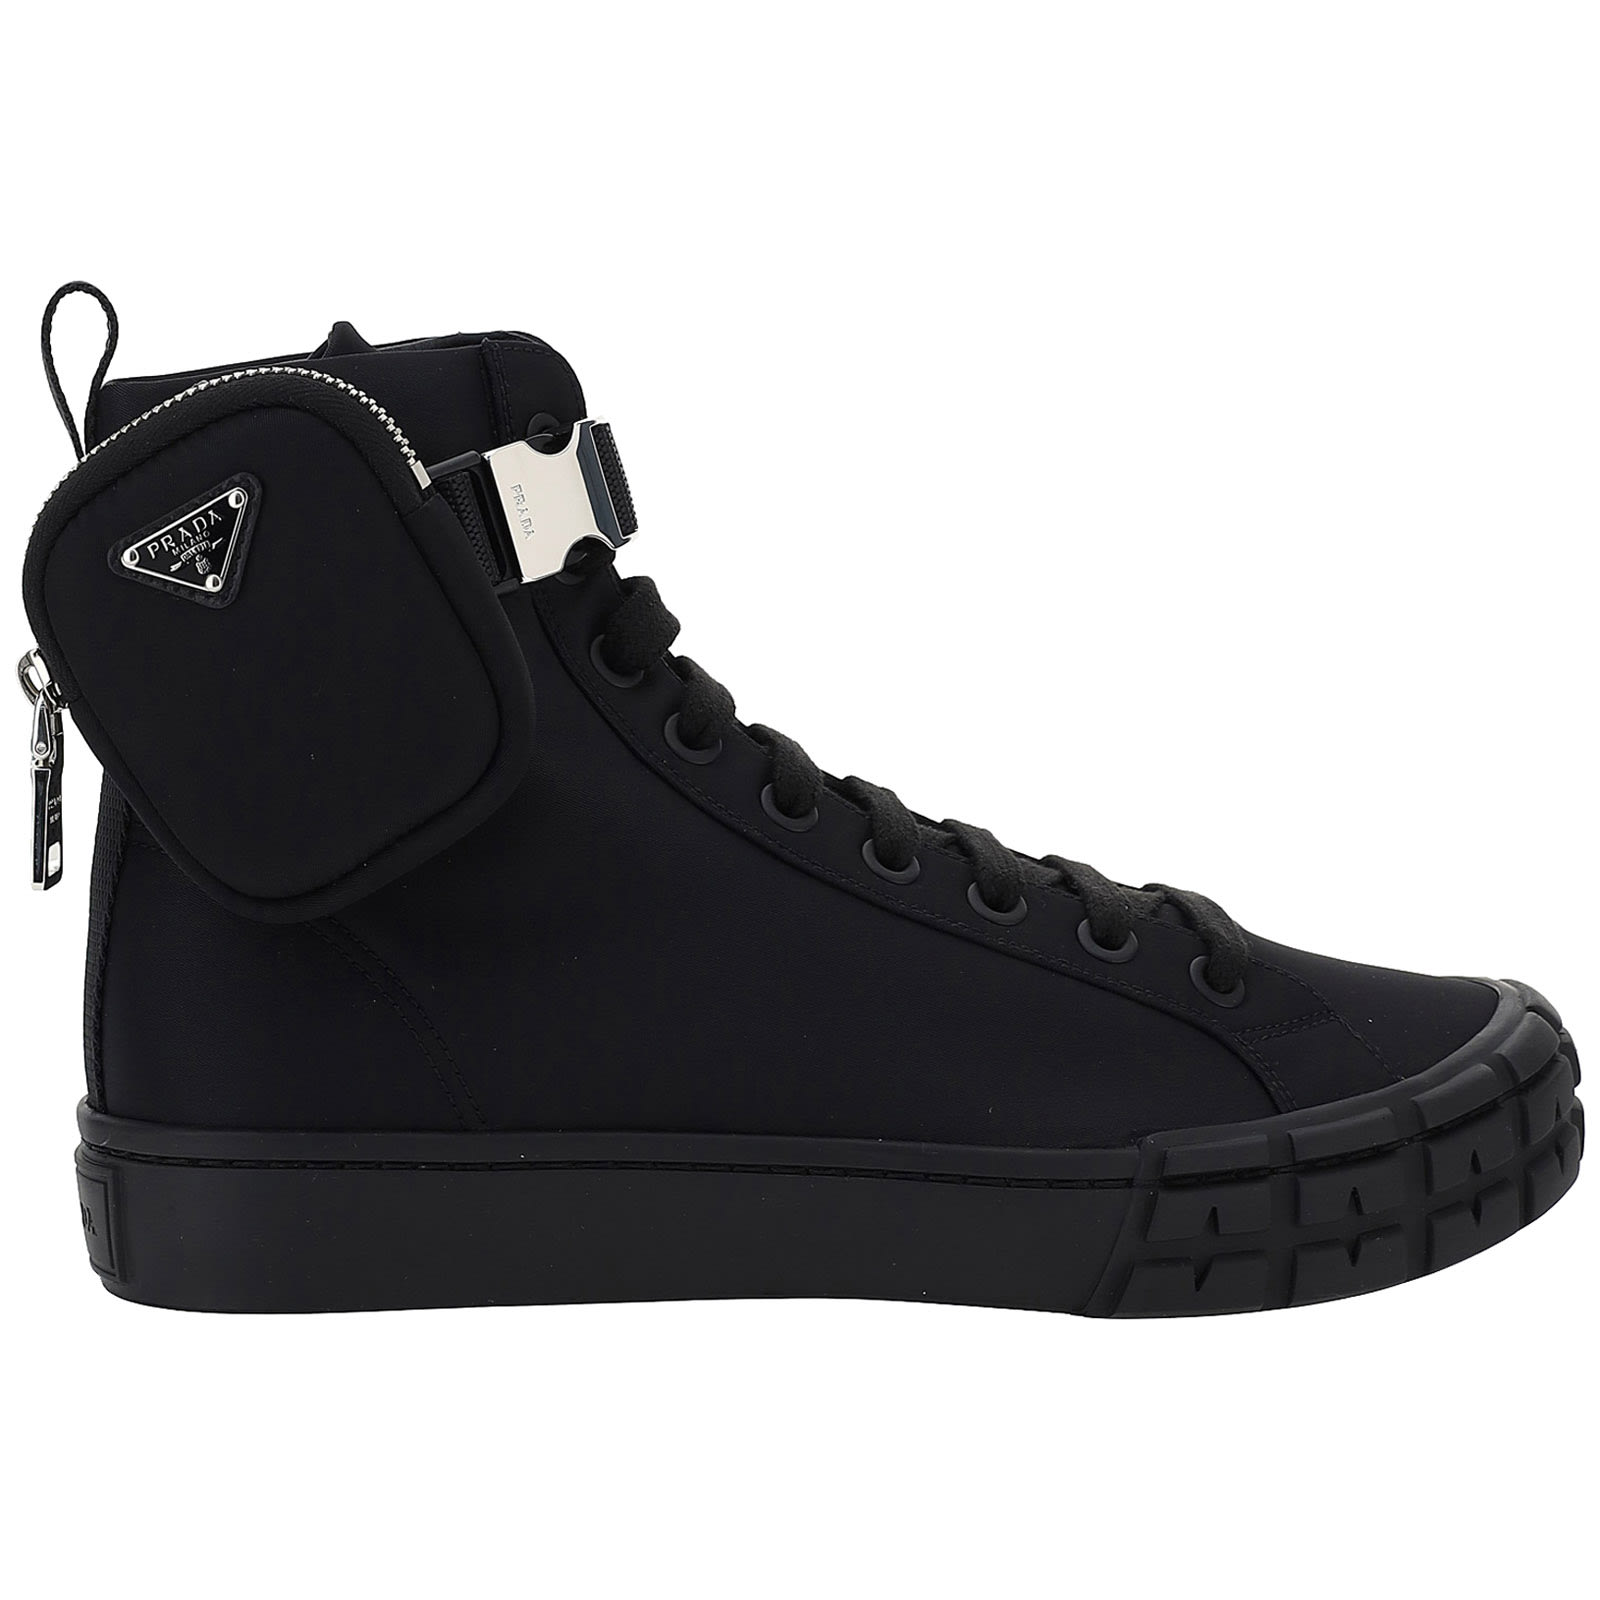 Prada HIGH-TOP WHEEL HIGH-TOP SNEAKERS